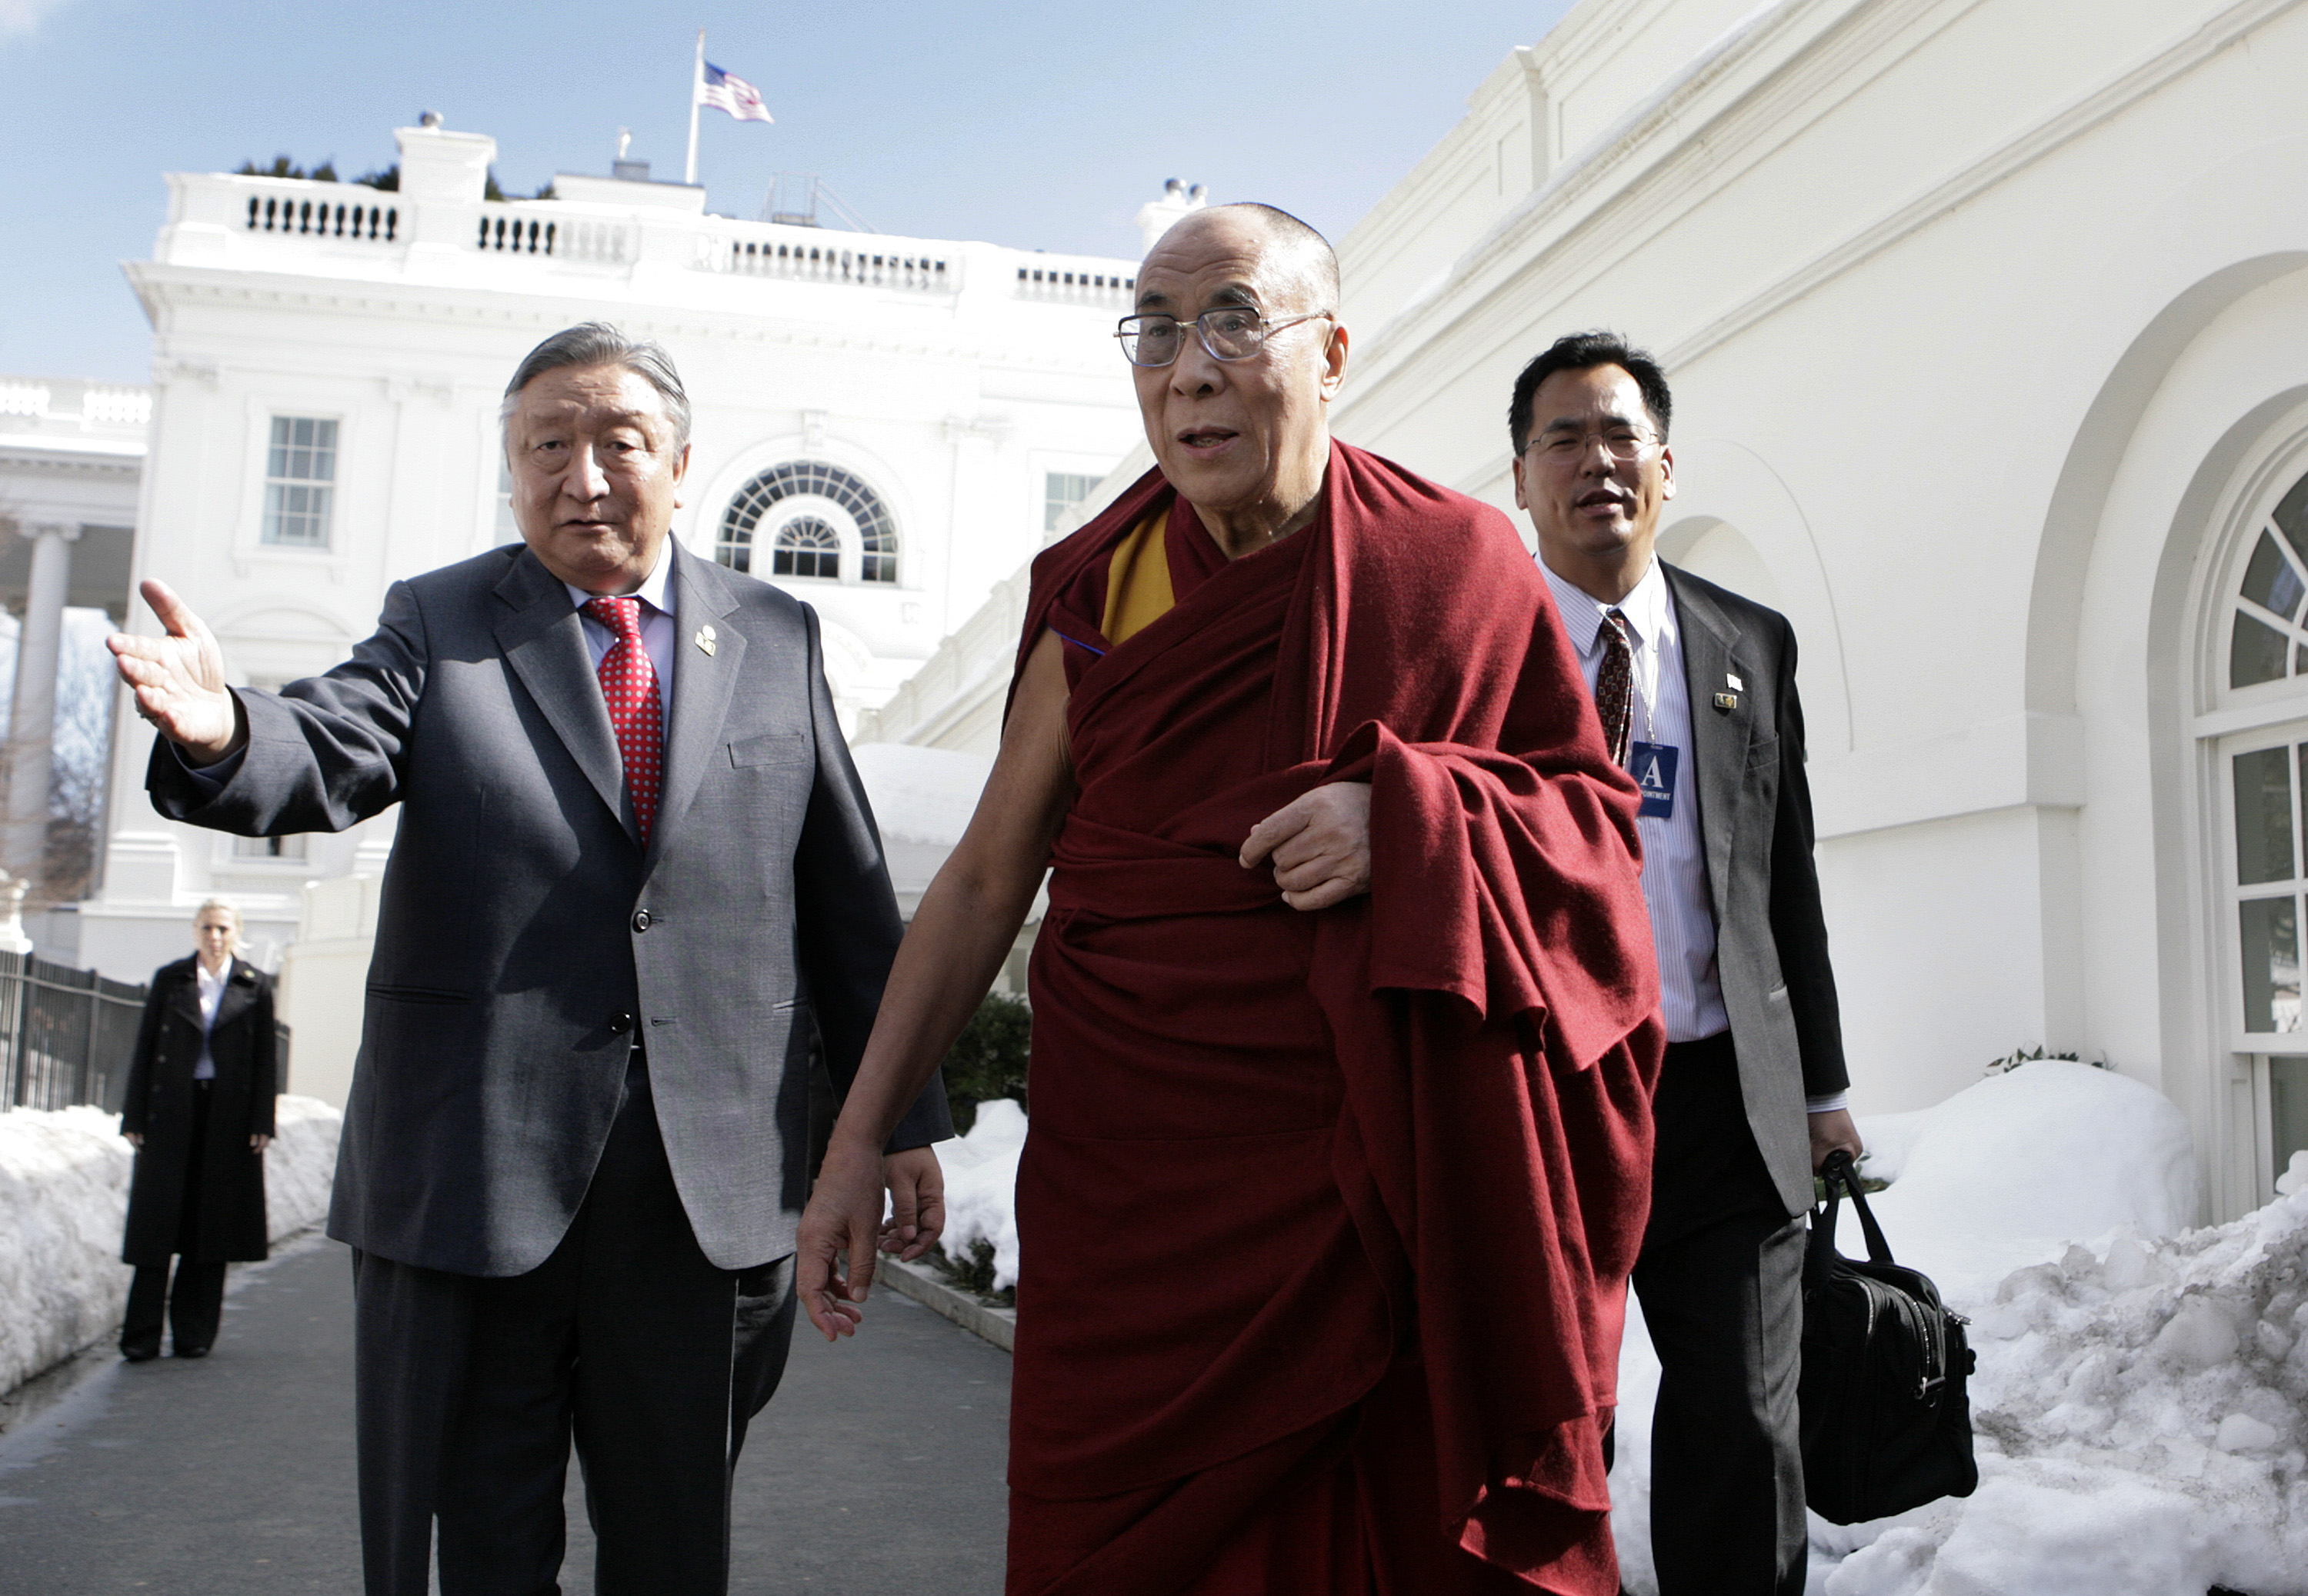 Tibetan spiritual leader the Dalai Lama walks outside the White House after his meeting with U.S. President Barack Obama  in Washington on Feb. 18, 2010